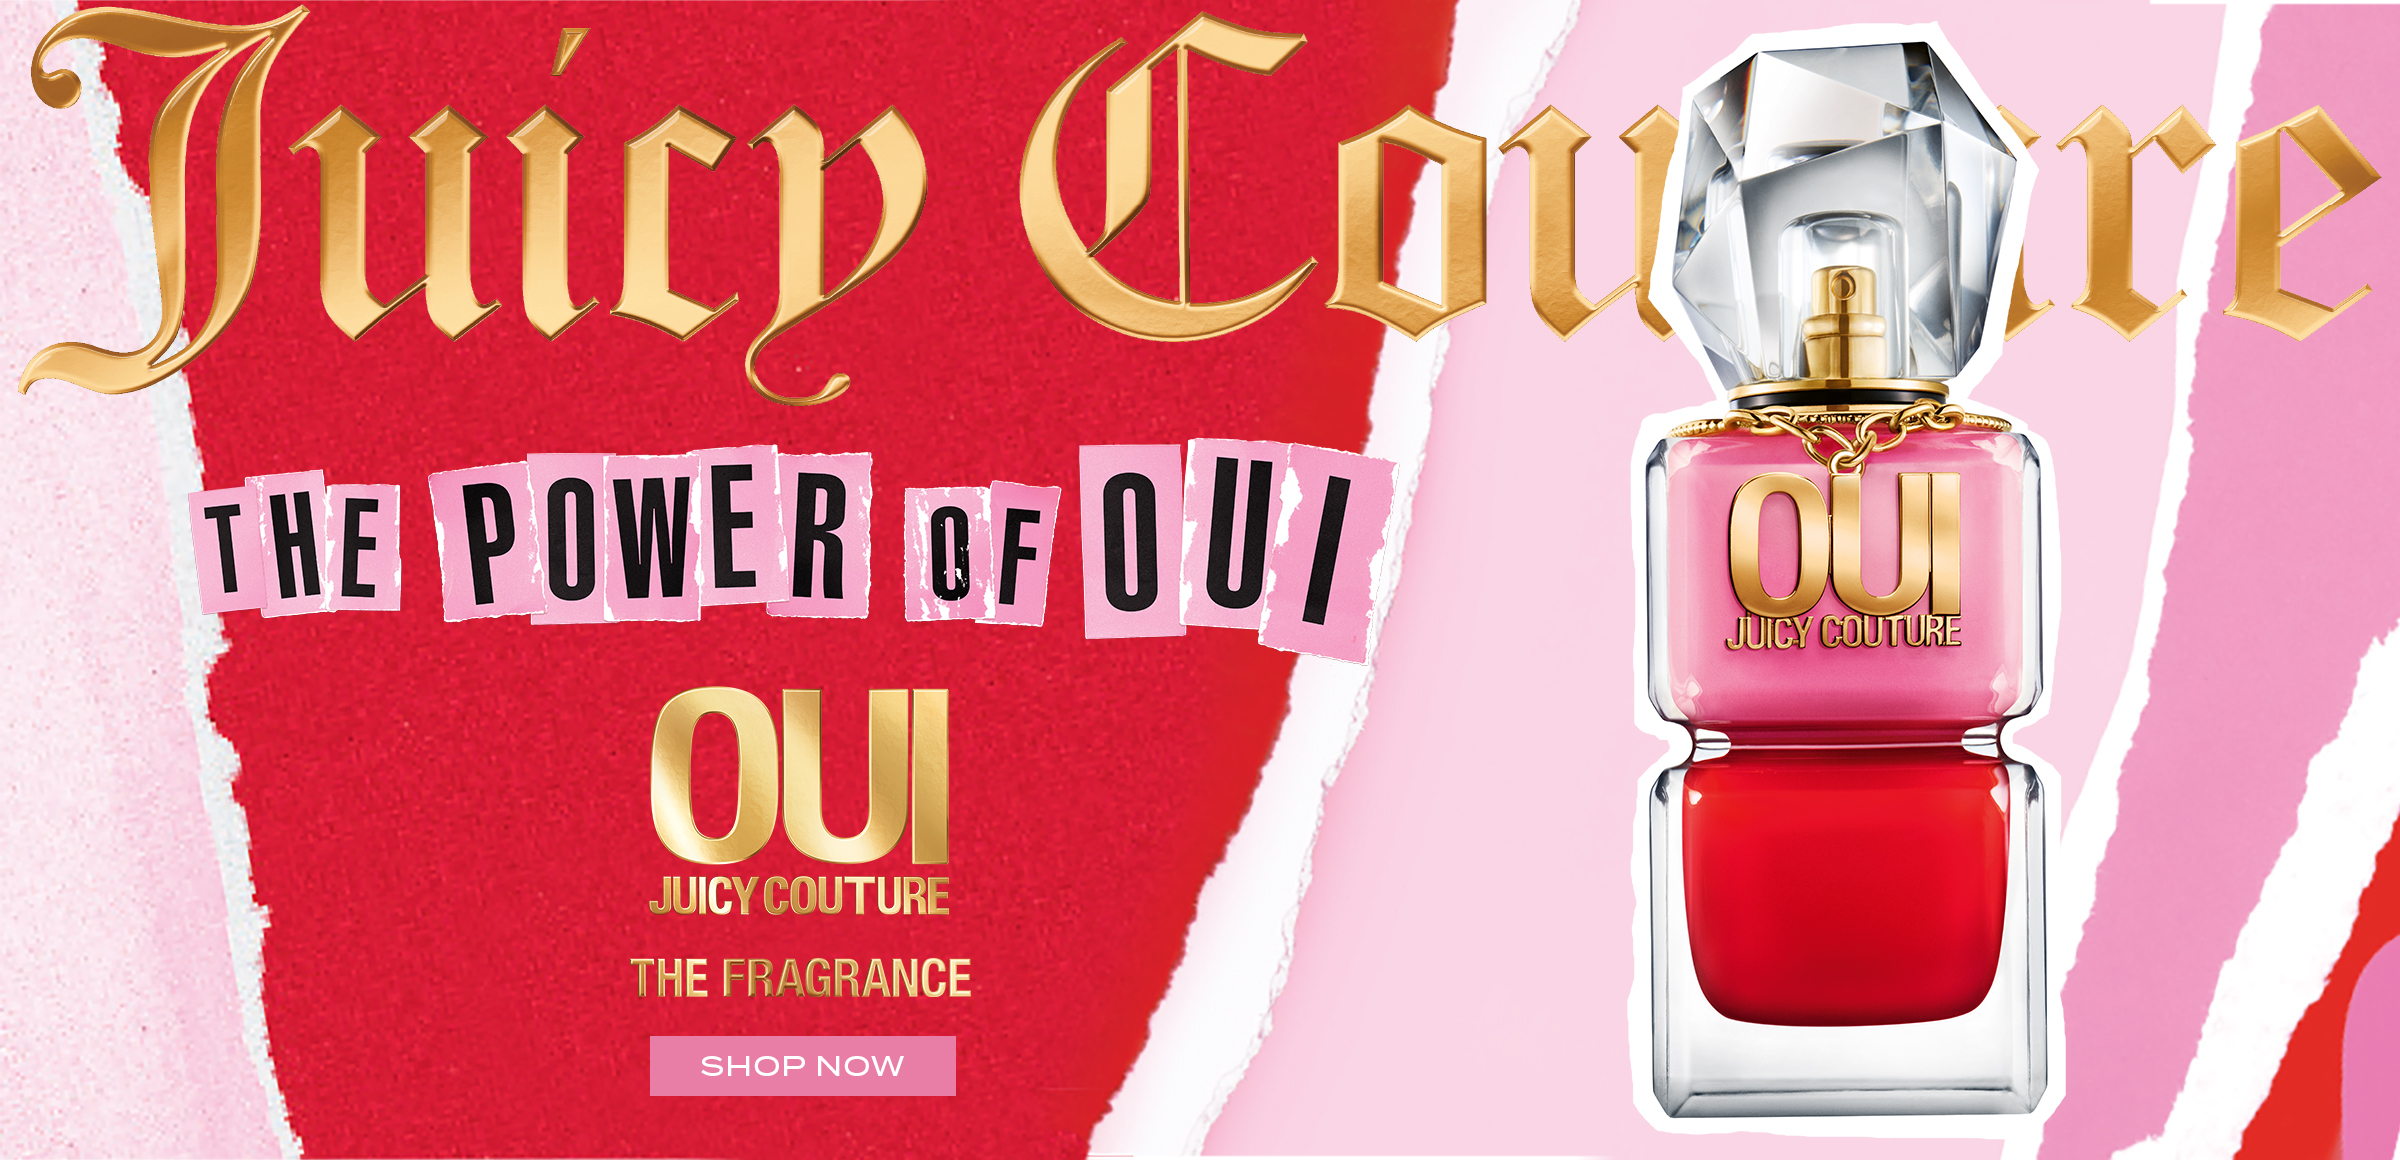 Oui Juicy Couture - Fragrance Collection